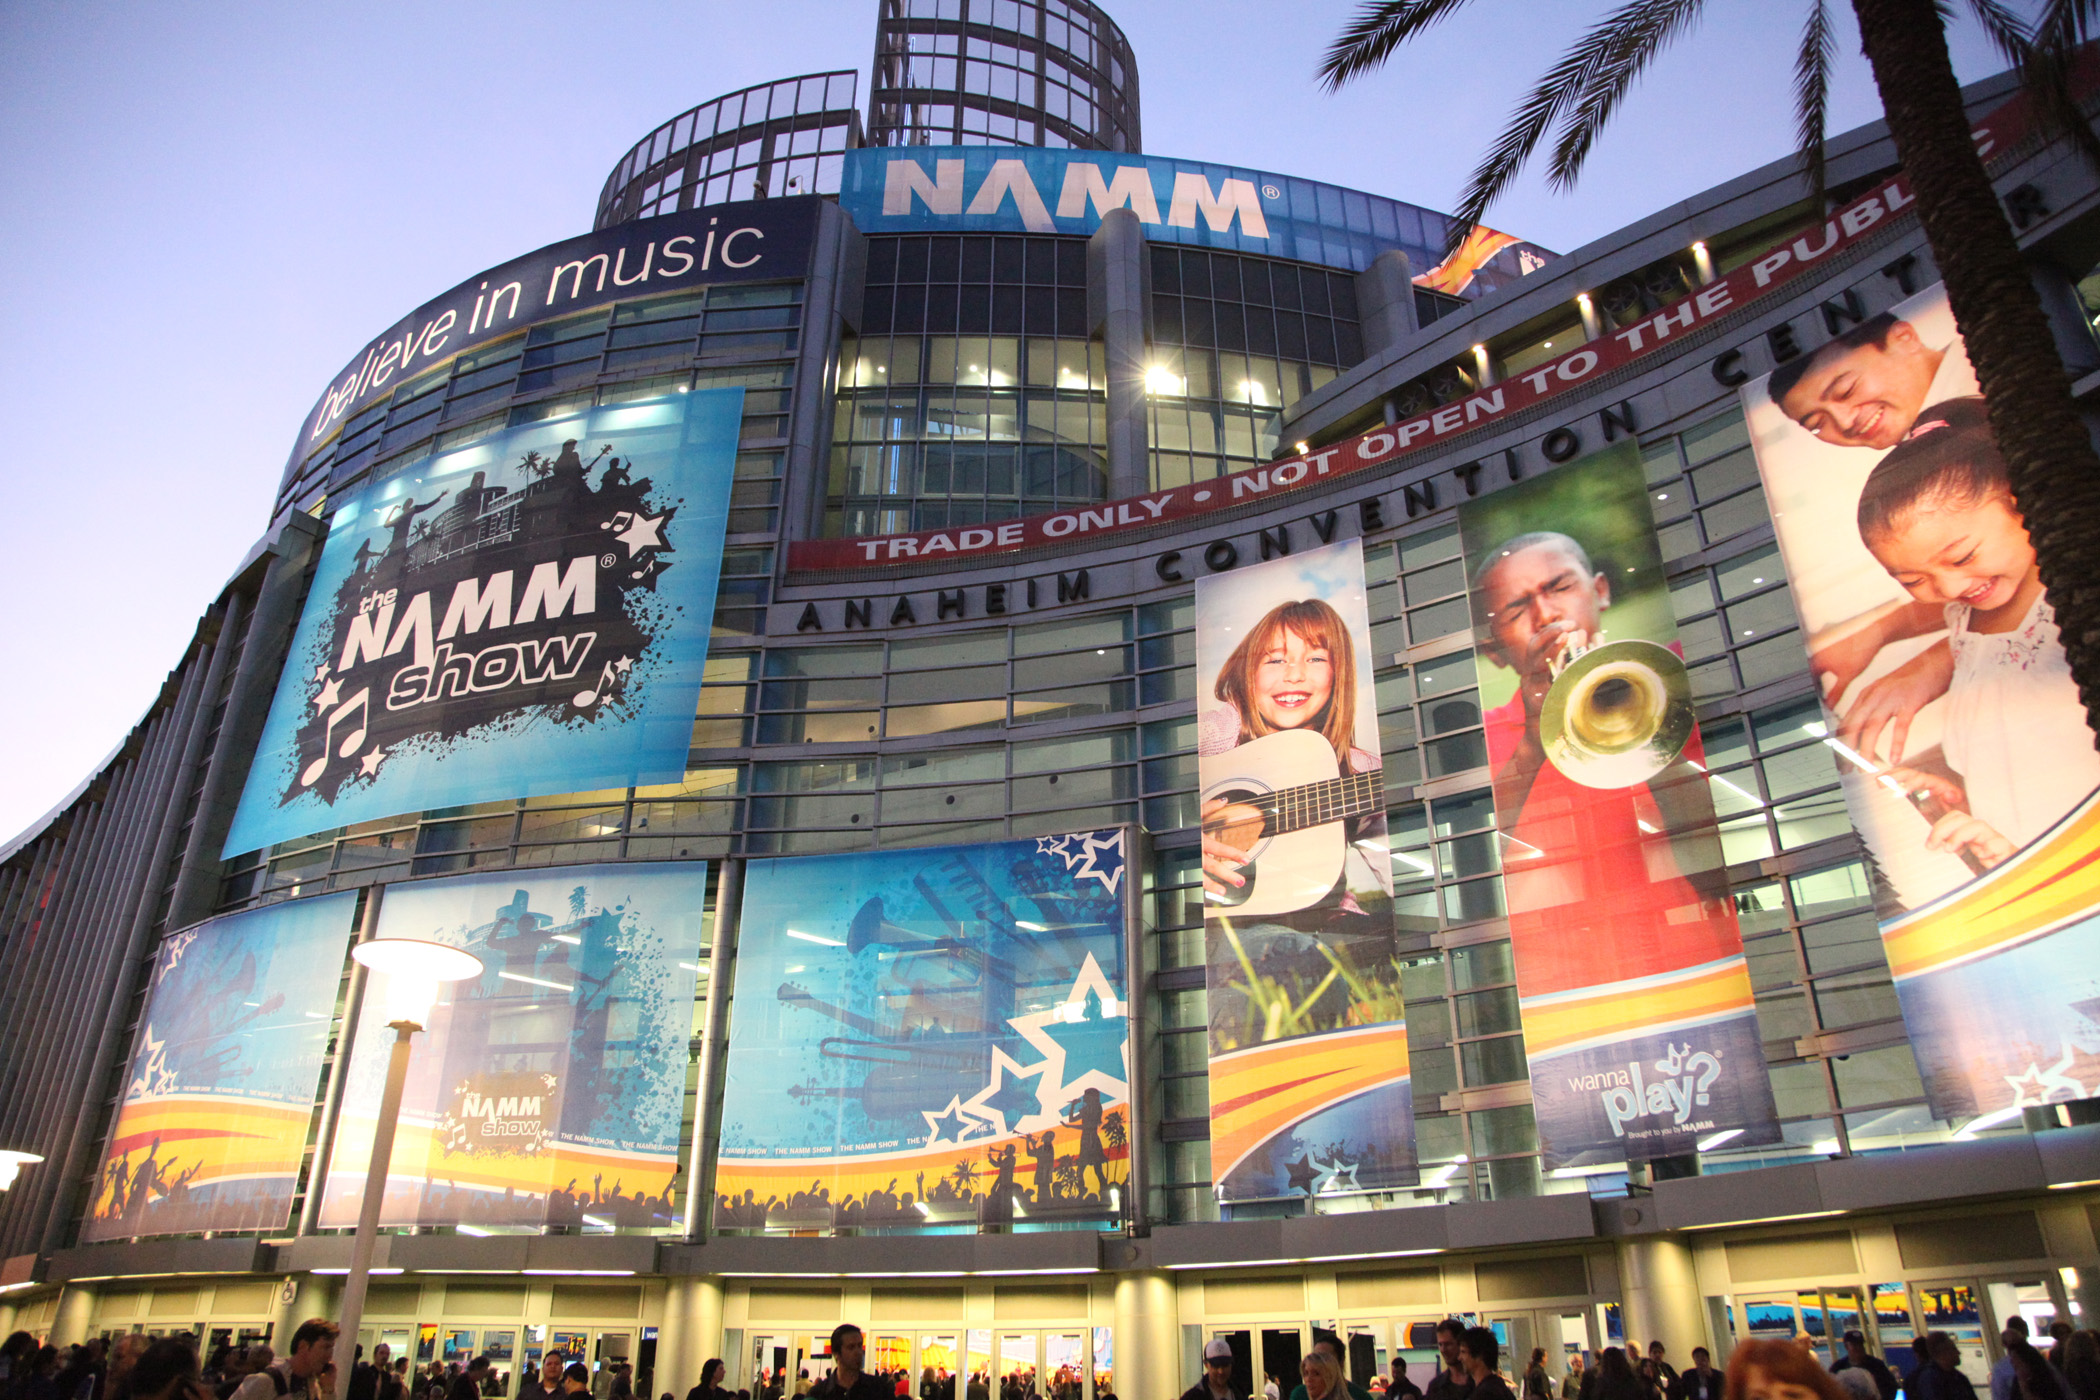 Countdown begins: NAMM, see you soon!